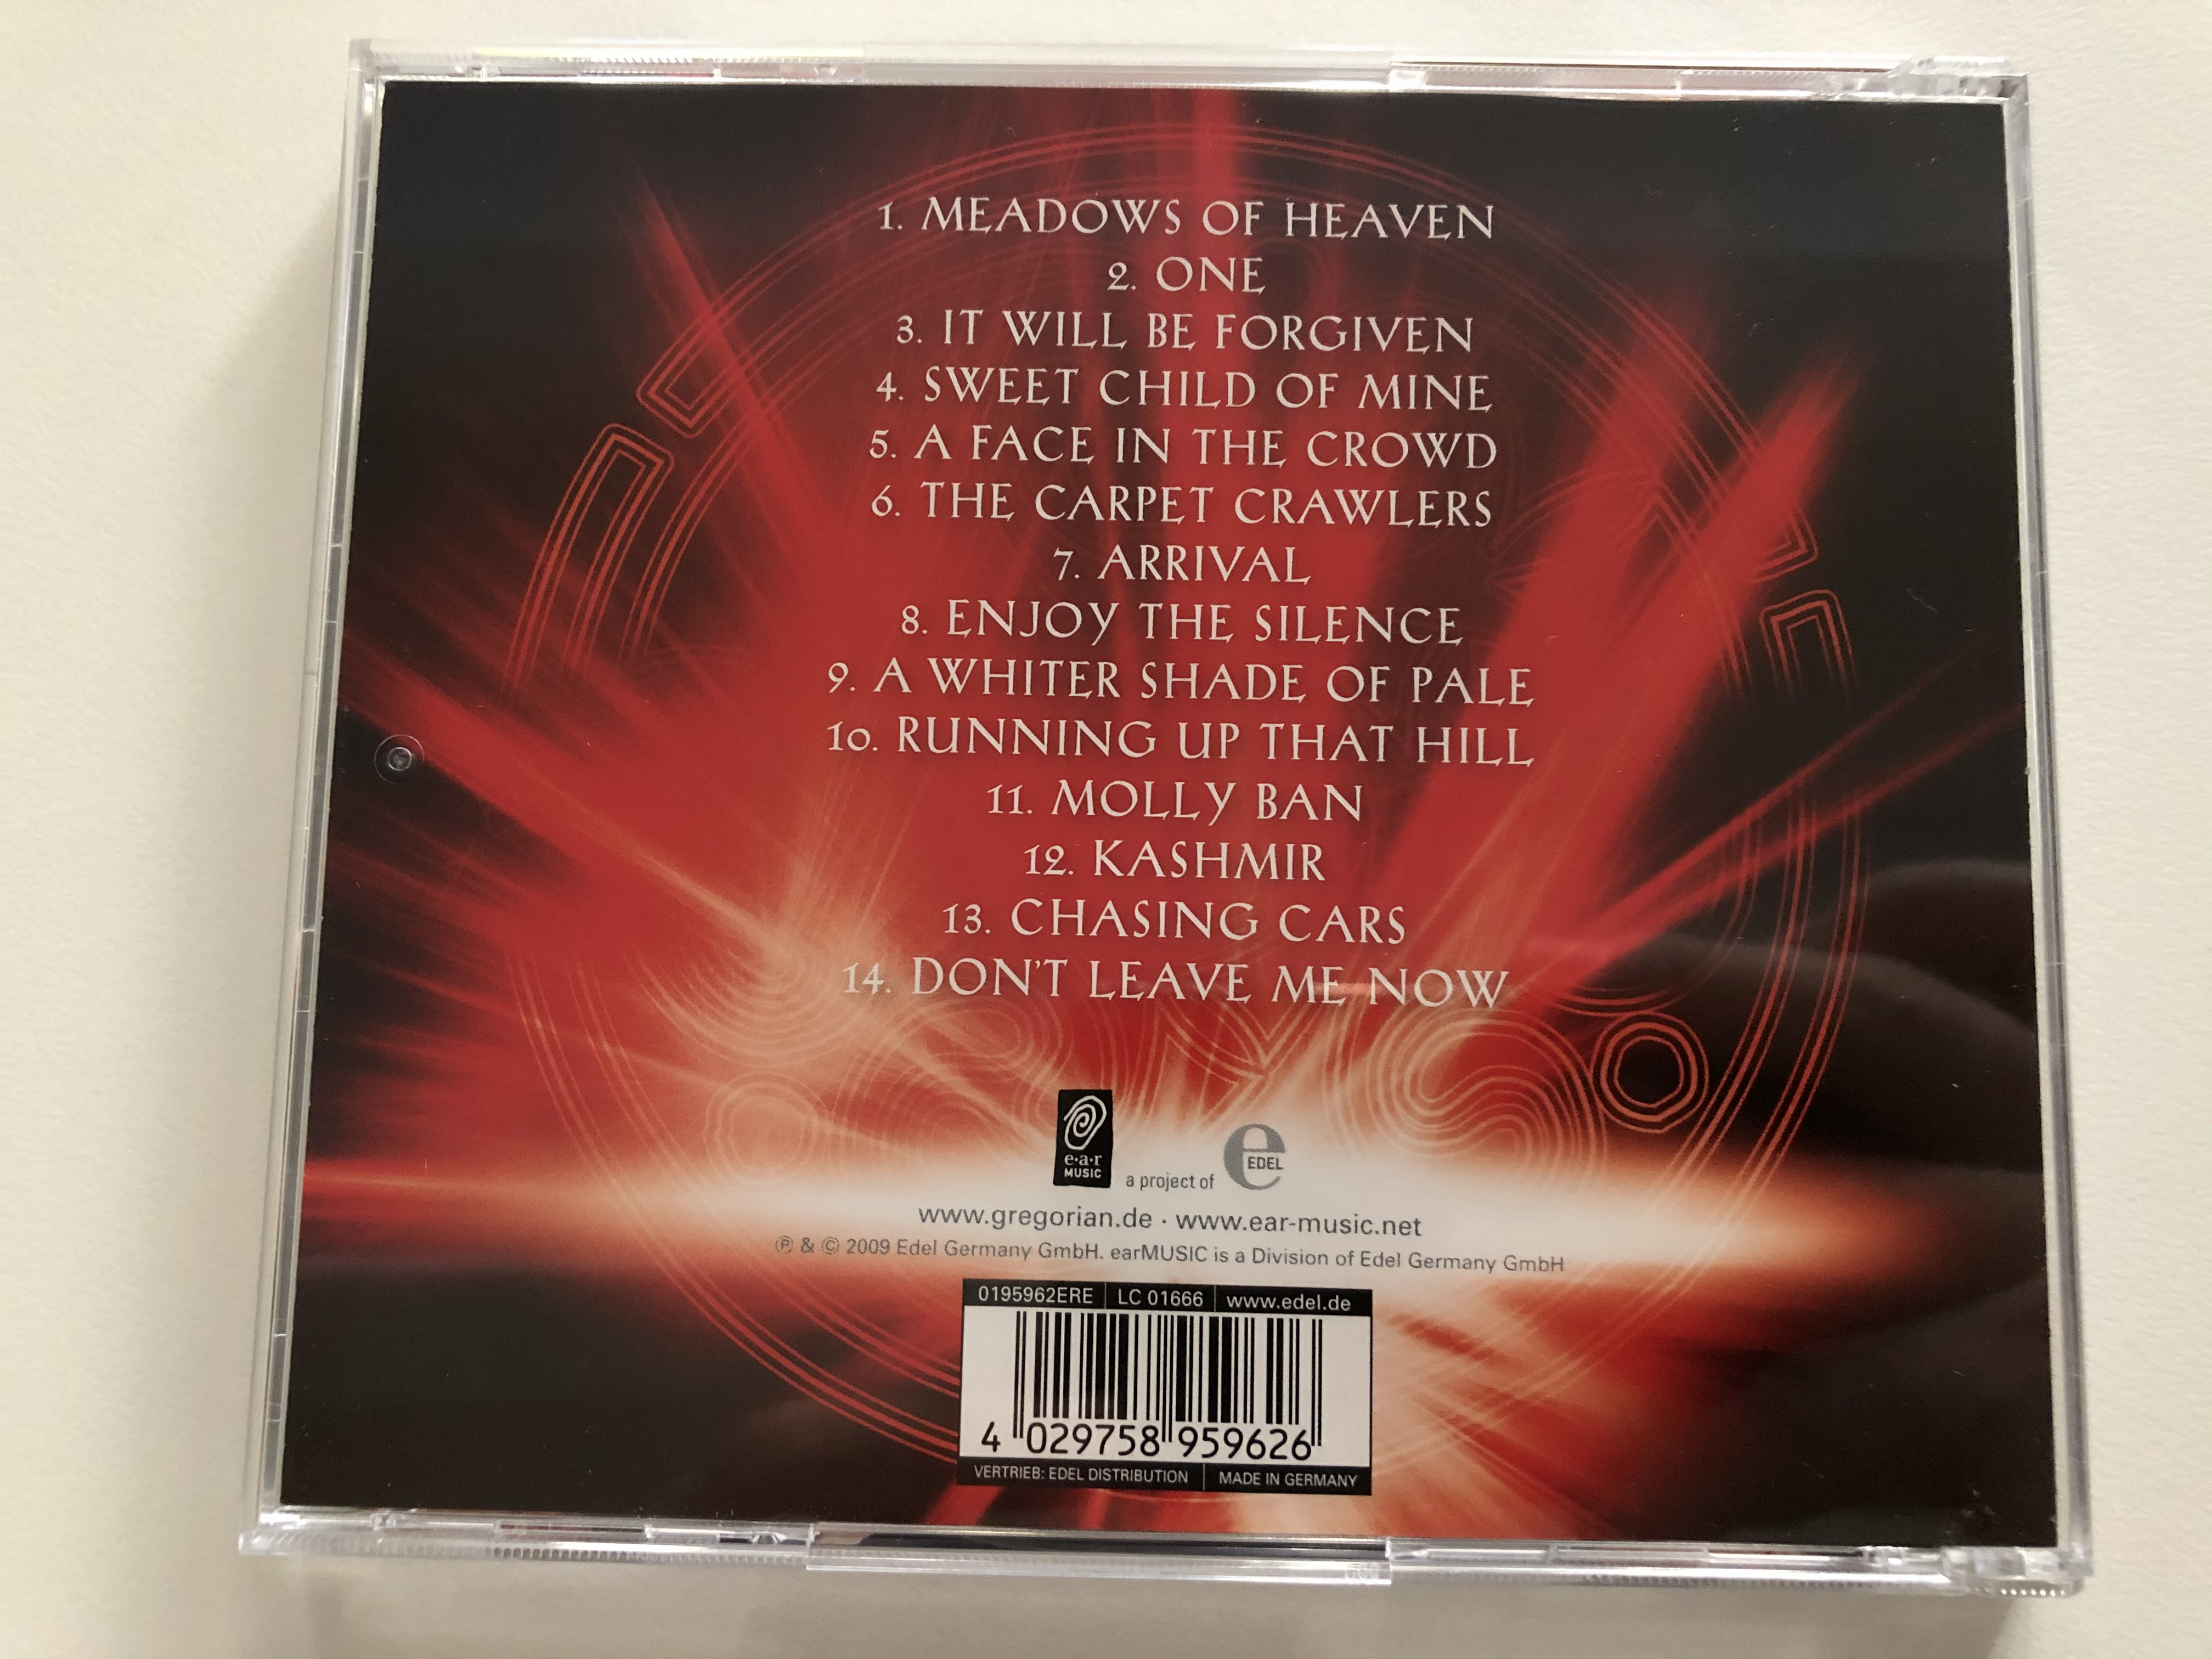 gregorian-masters-of-chant-chapter-vii-ear-music-audio-cd-2009-0195962ere-9-.jpg